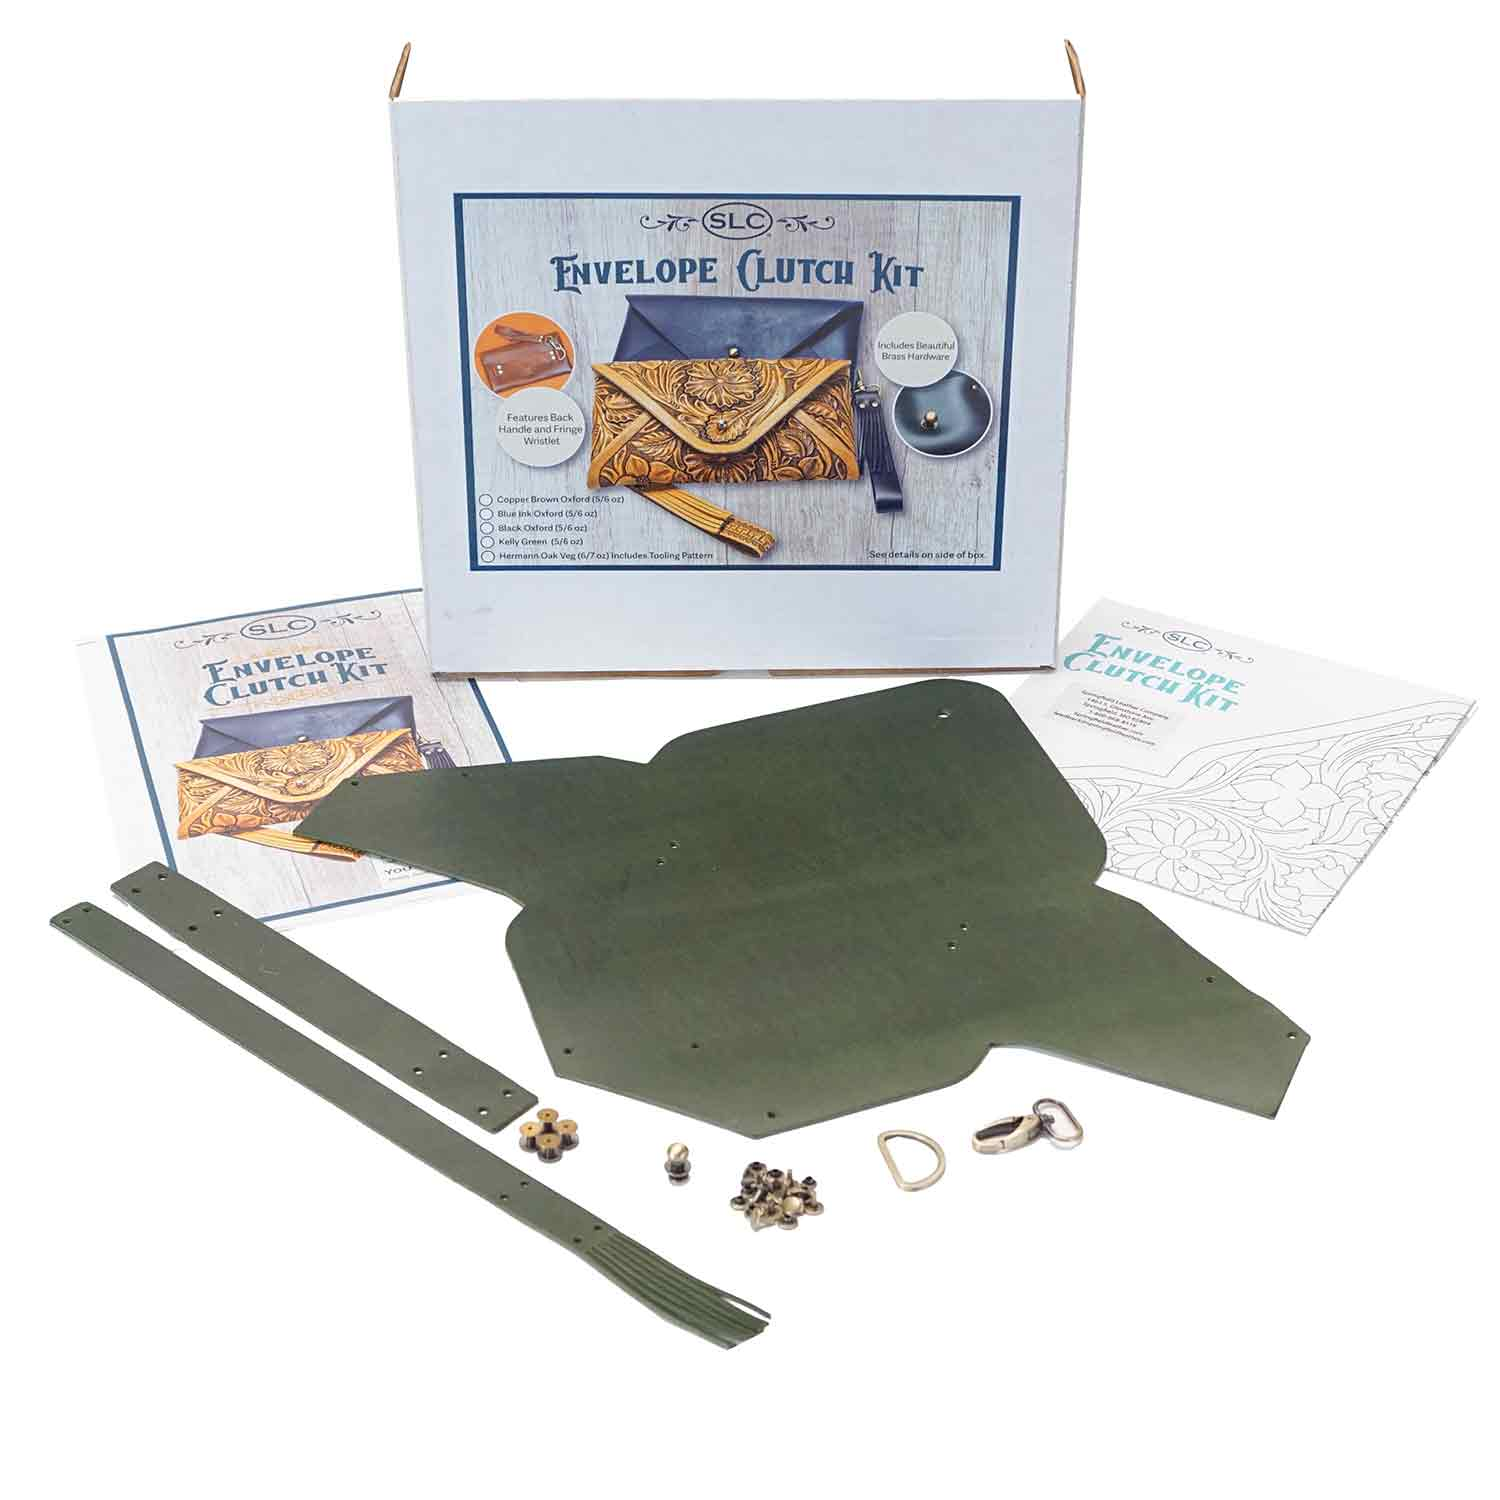 Envelope Clutch Kit 10